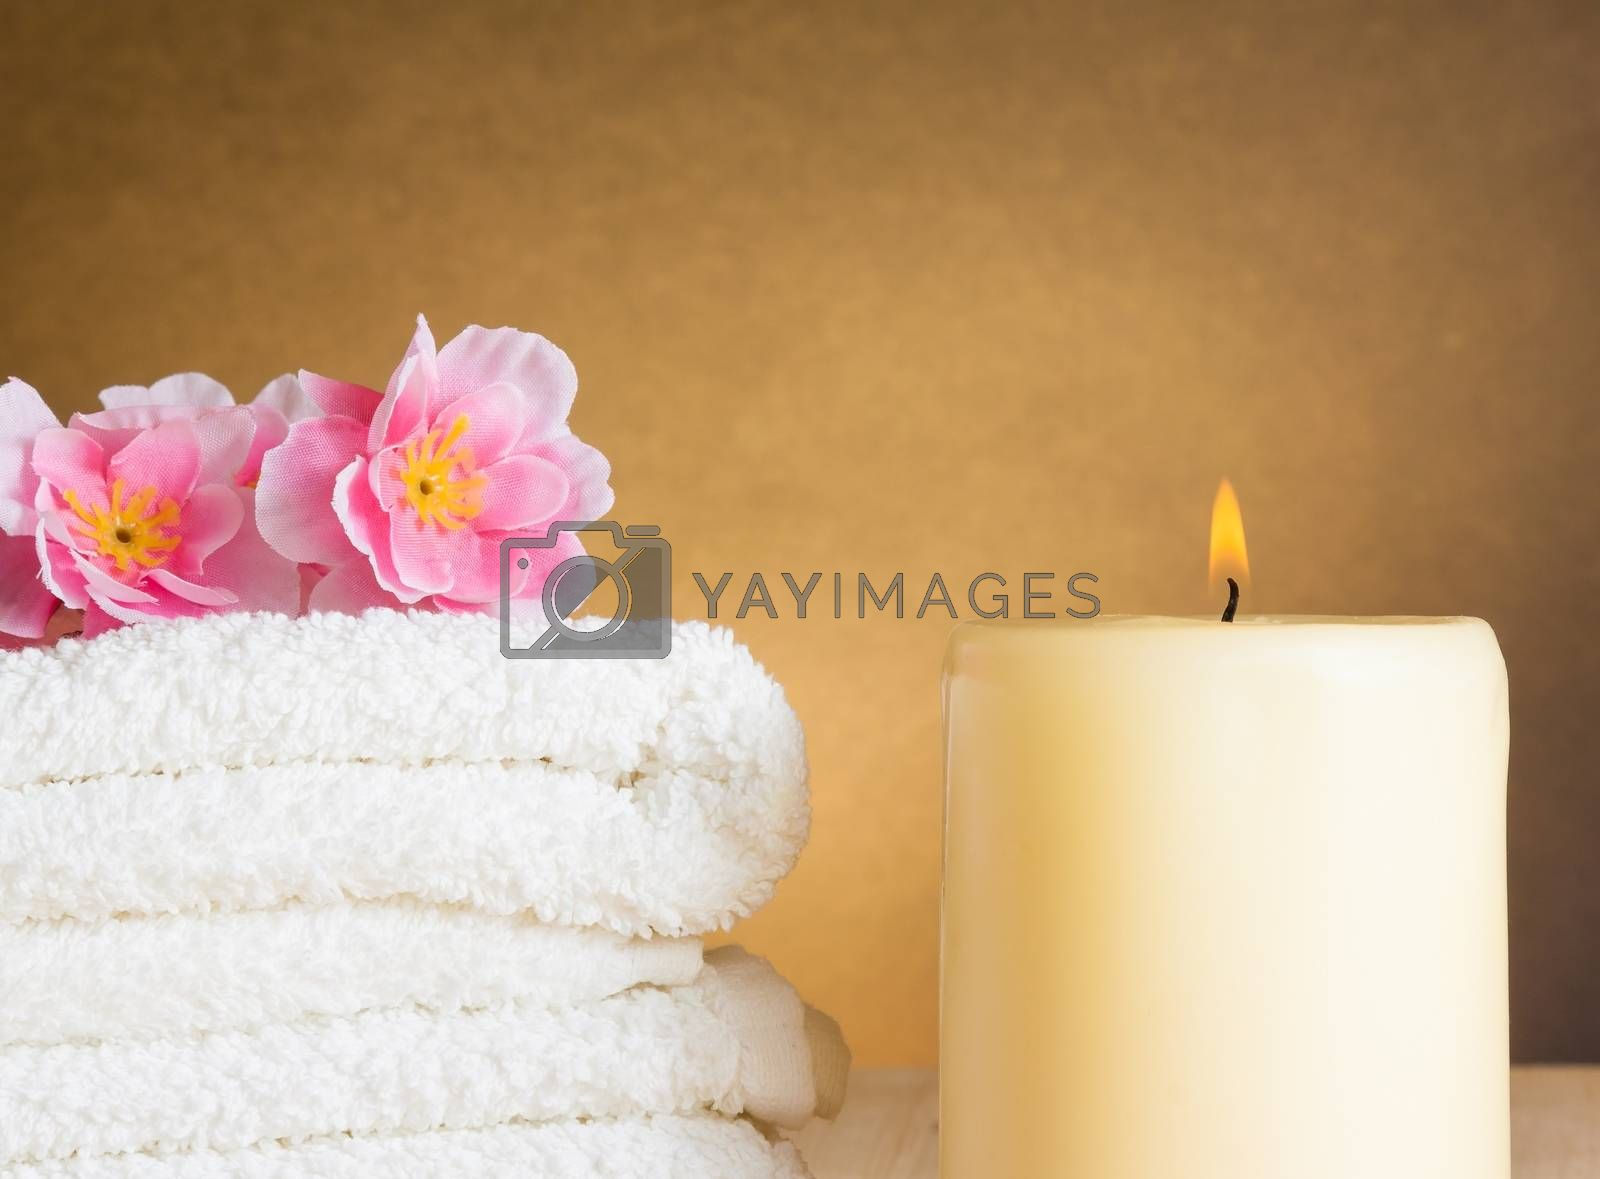 Spa massage border background with towel stacked and candle by donfiore